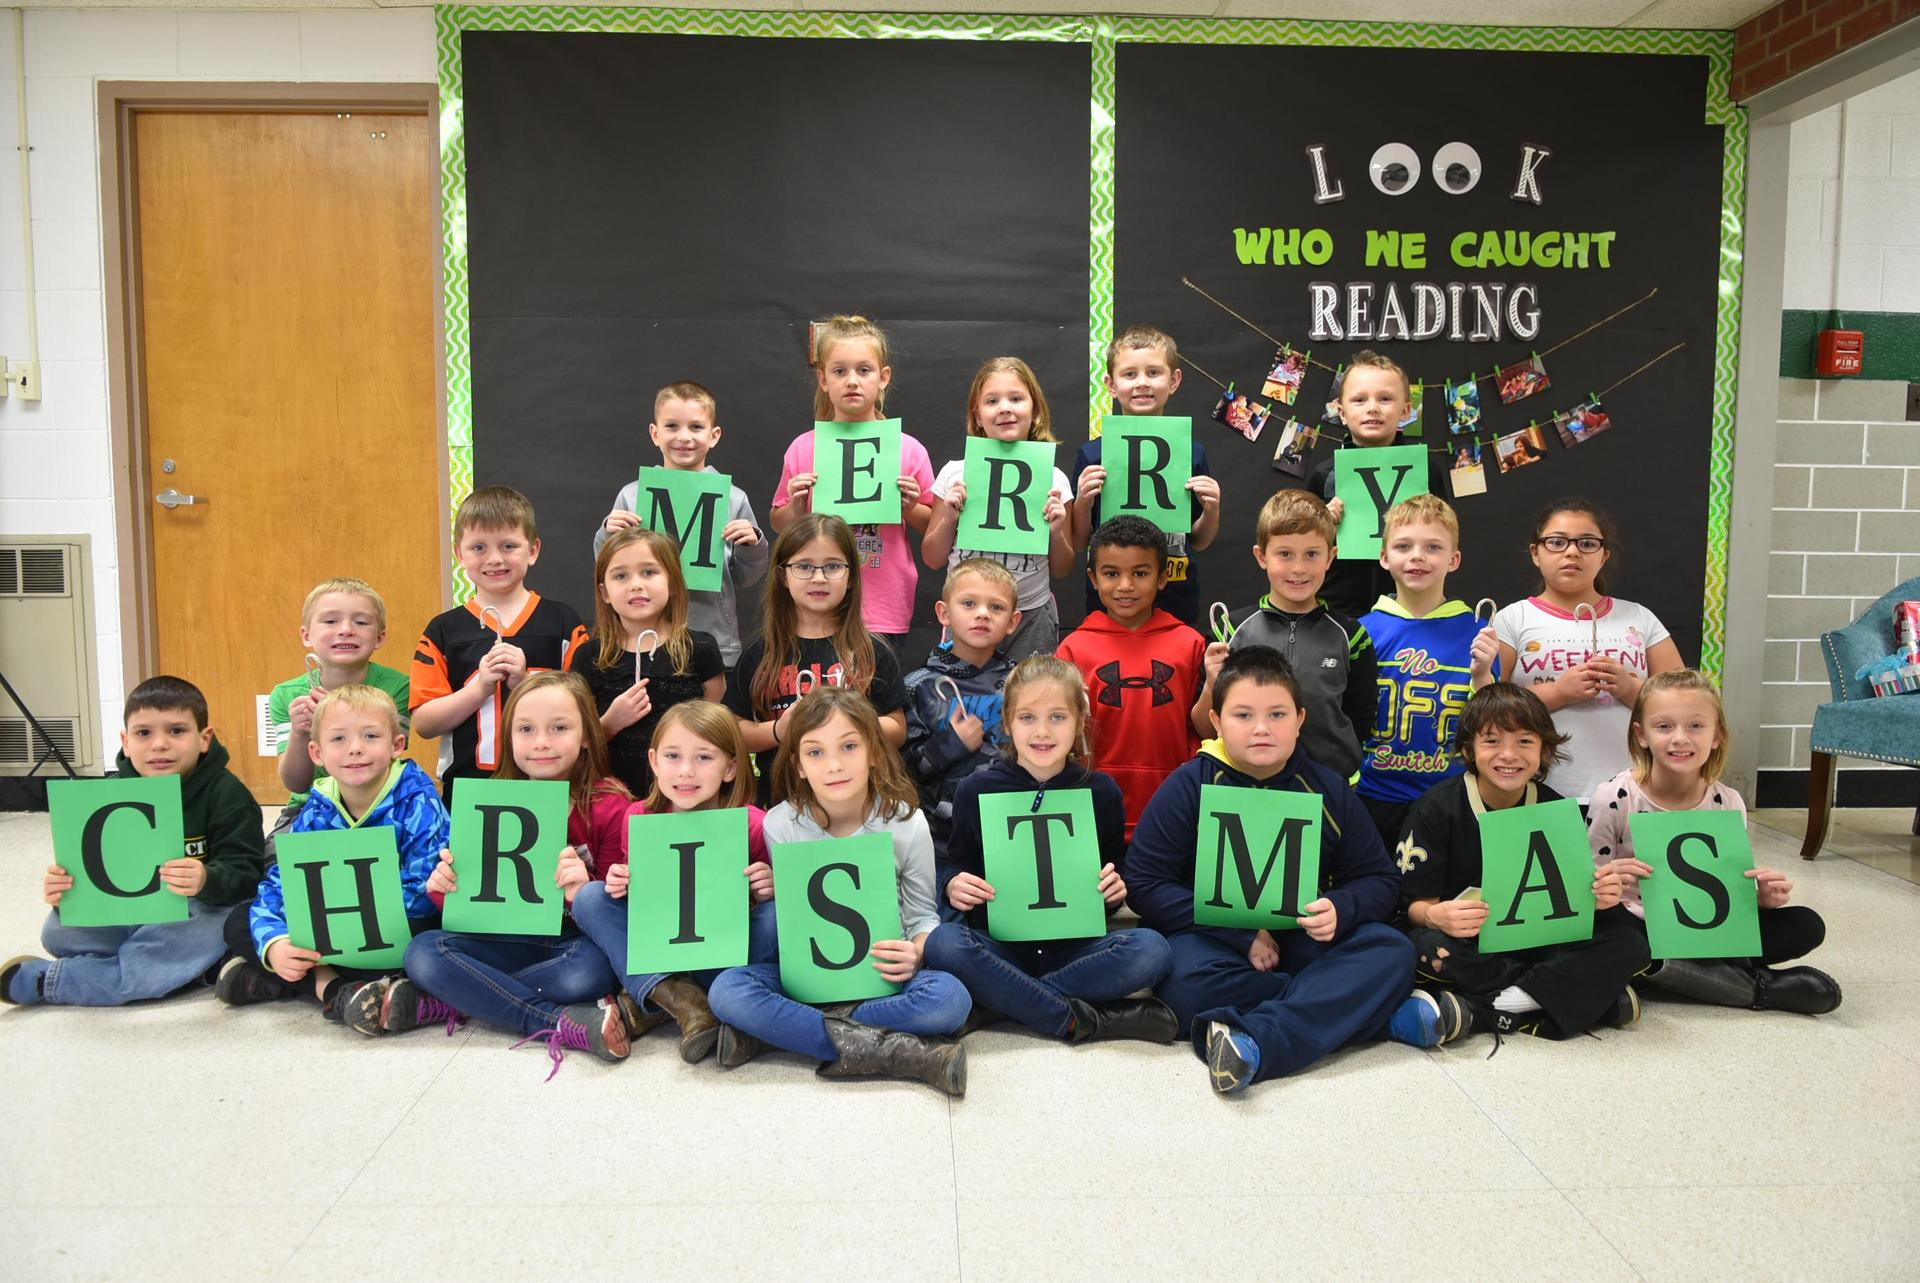 Merry Christmas from our class to you!!